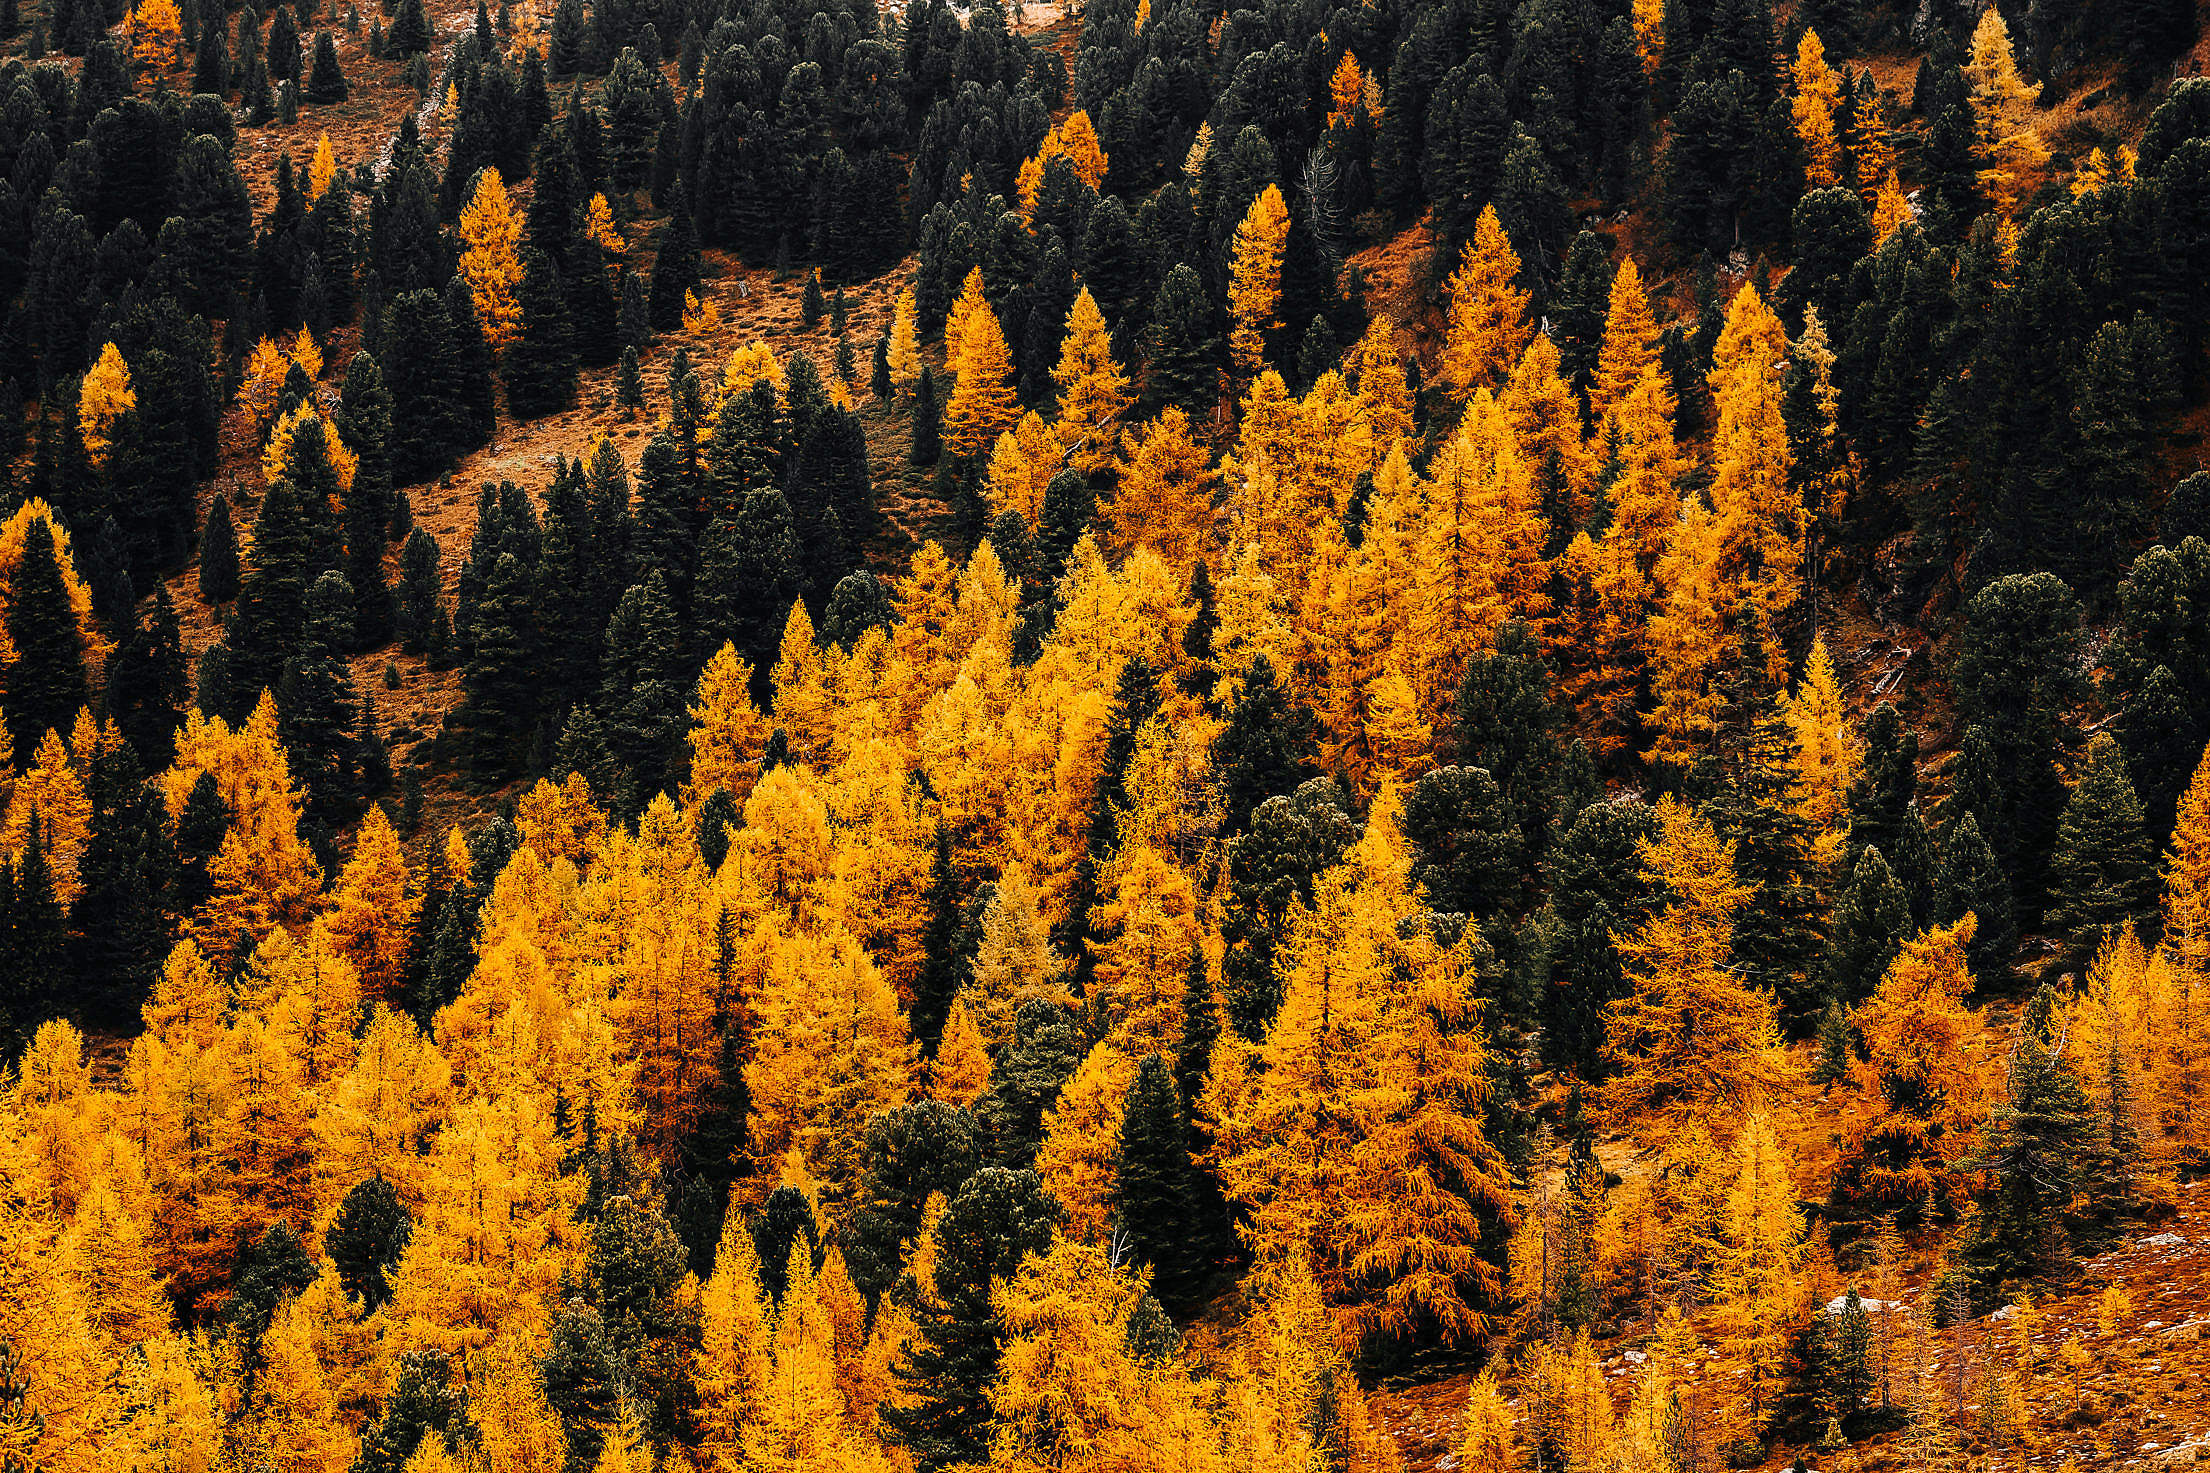 Colorful Trees in Autumn Free Stock Photo